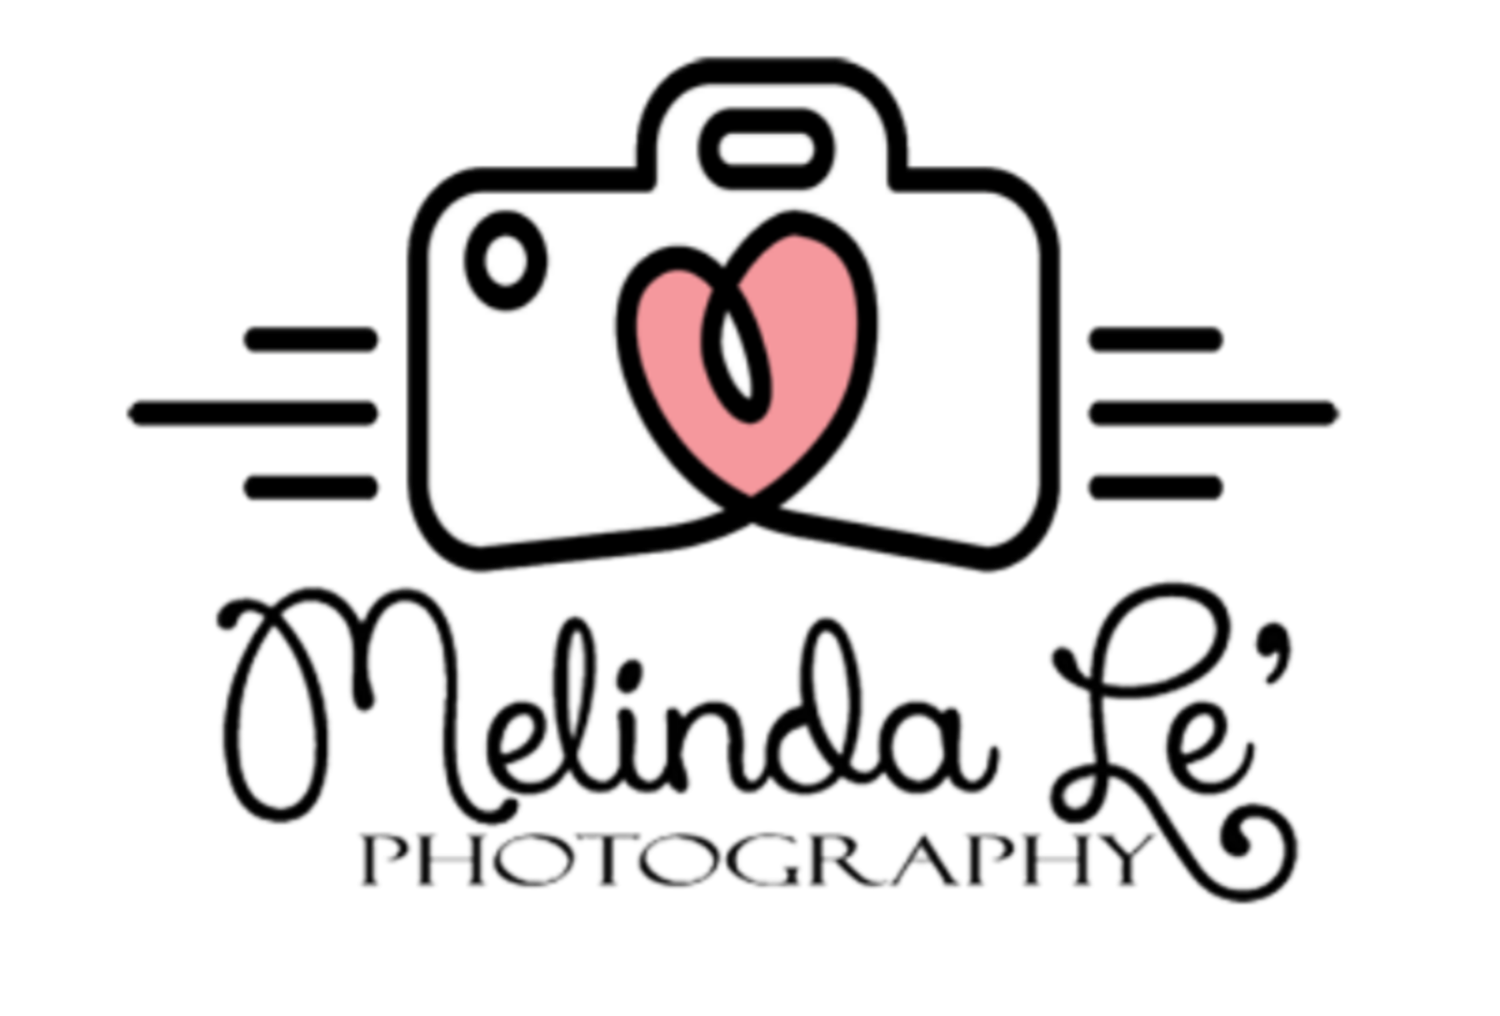 Melinda Le' Photography